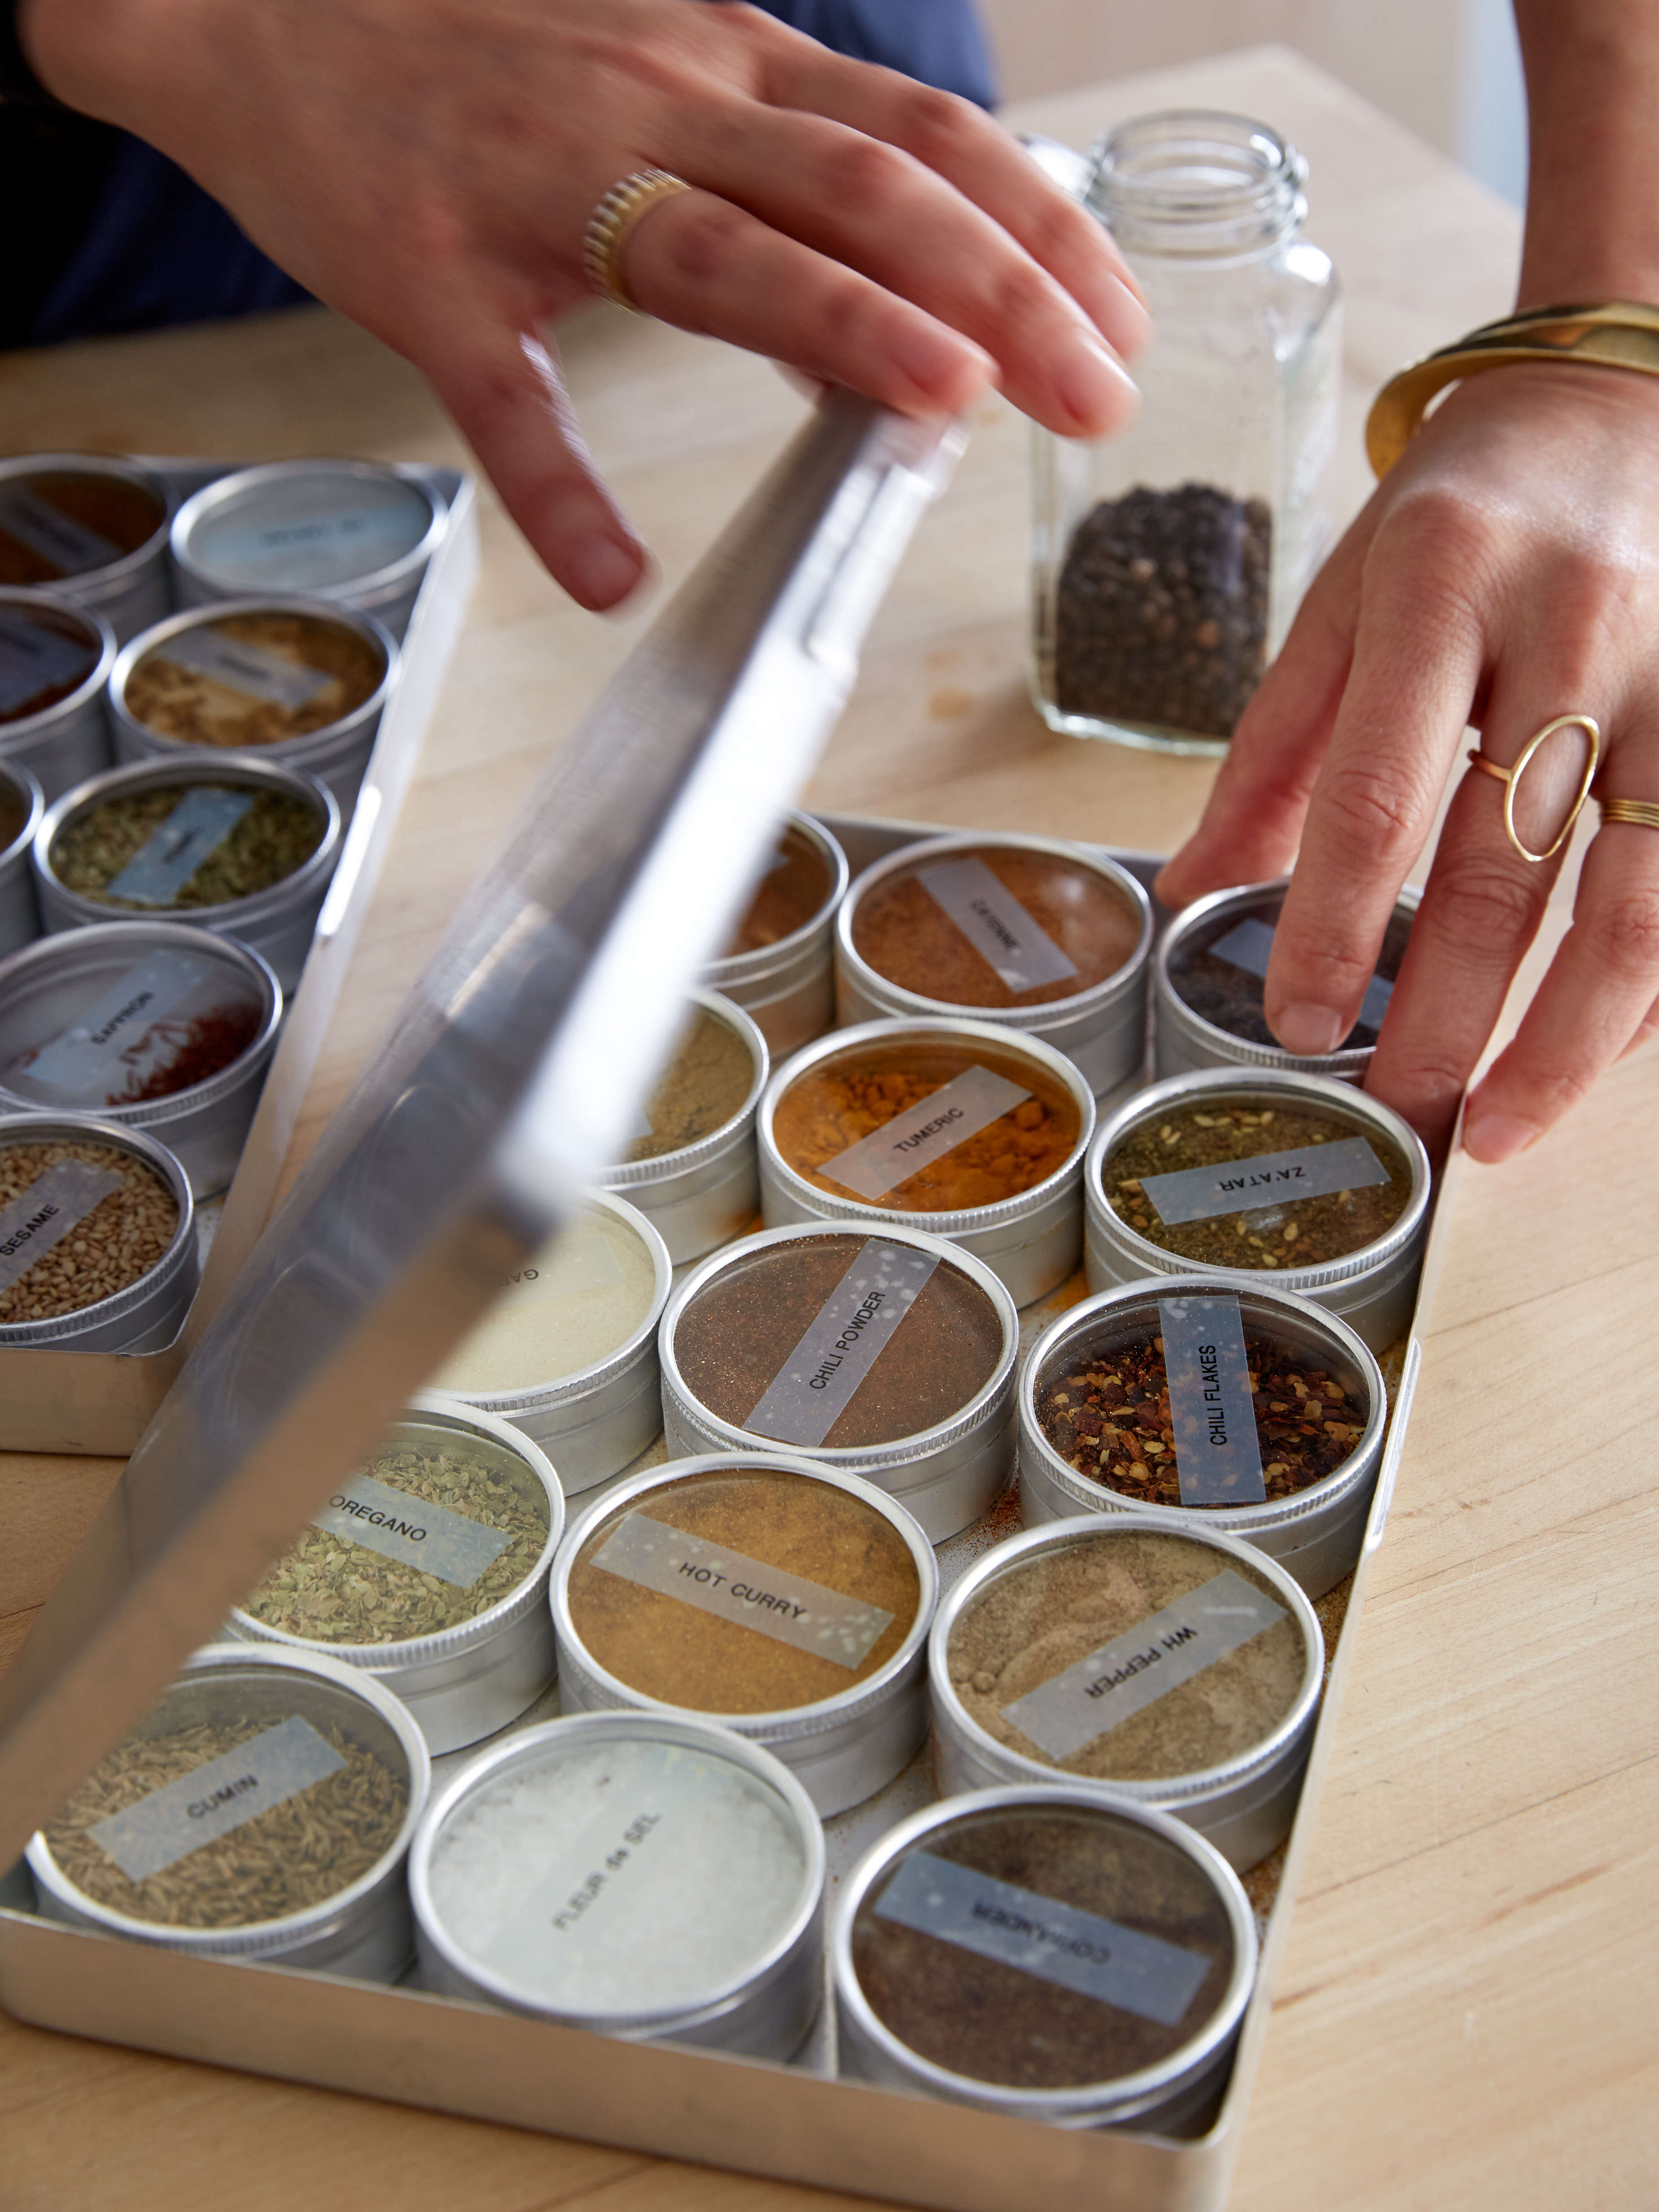 Lo lo low cost small bedroom storage ideas - Spice Storage Idea For Compact Kitchens Tin Boxes With Glass Tops